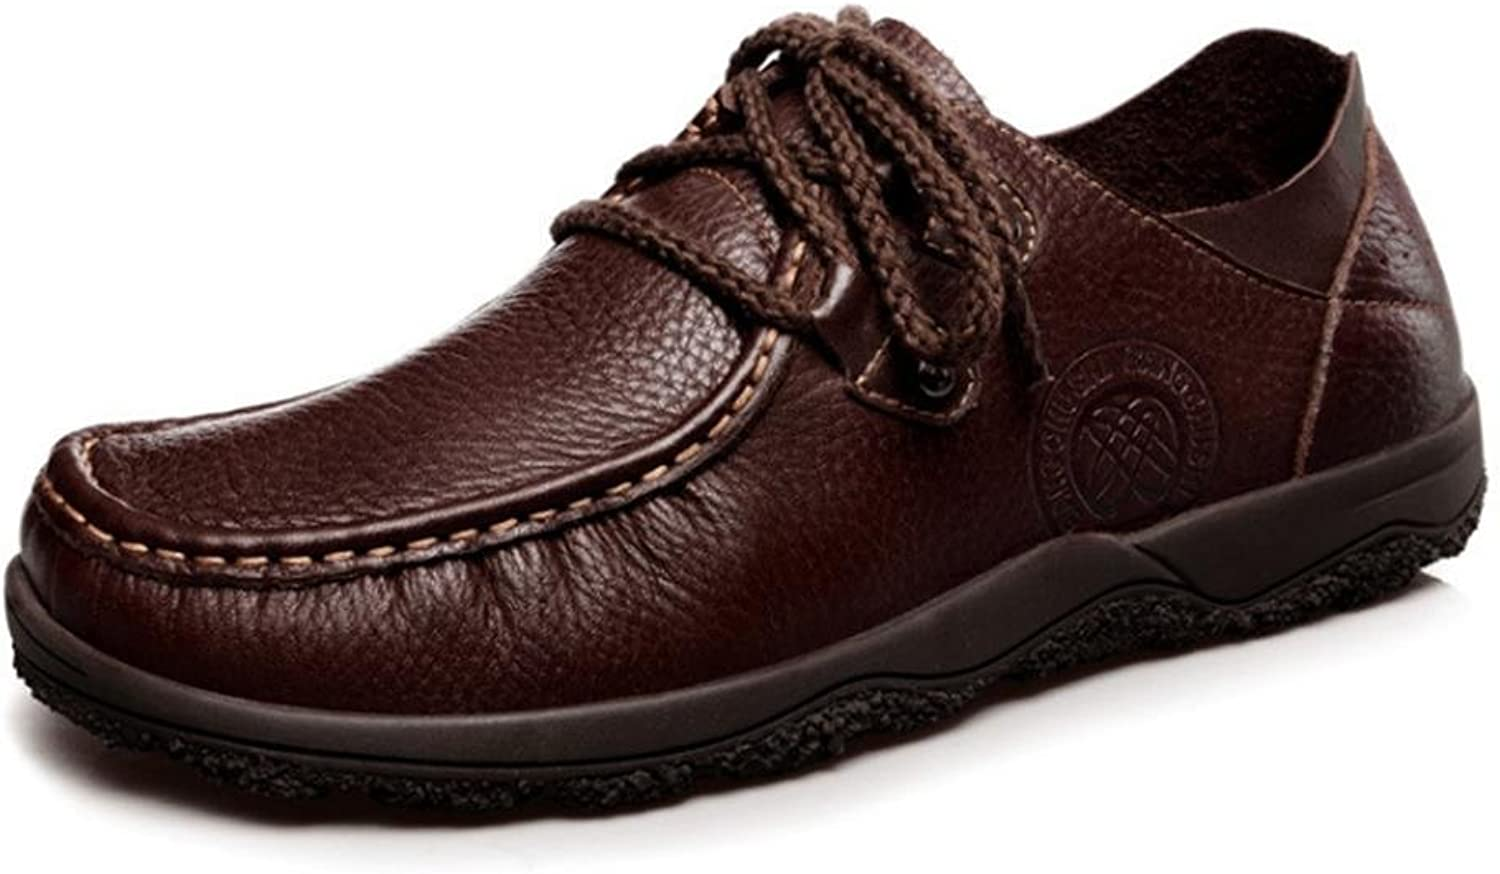 Men'S shoes Leather Casual Rubber Vintage Boat Business Clipper Lace Up Loafers Flat Brown Size 39 To 45